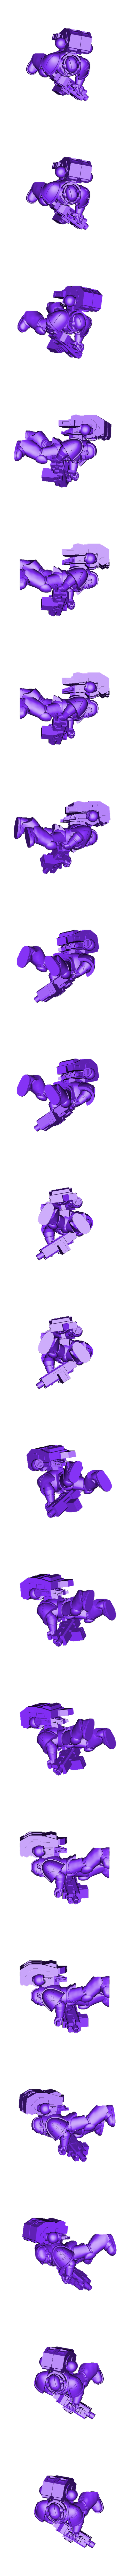 4_HeavyMG.stl Download free STL file Angelic Space Soldiers with Heavy Weapons • Template to 3D print, PhysUdo